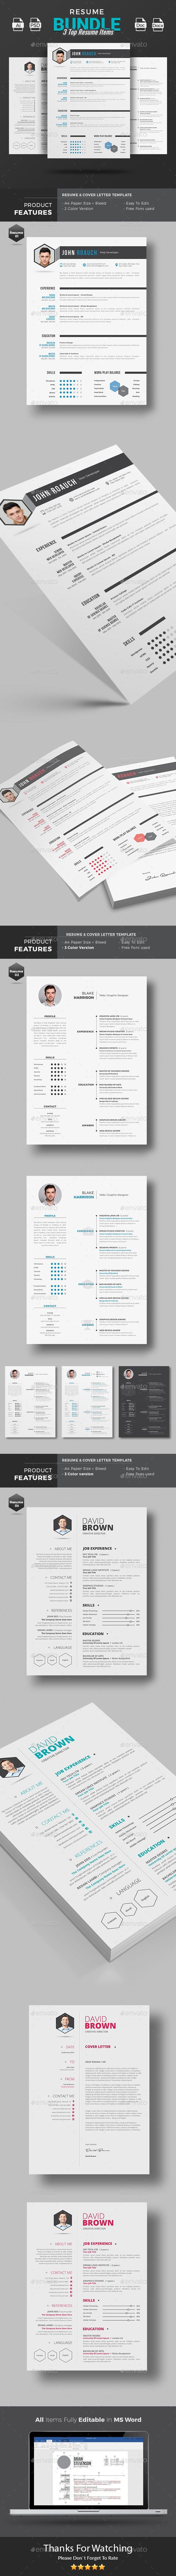 Comfortable 1 Page Resume Format Download Big 1 Page Resume Or 2 Round 1 Year Experience Java Resume Format 11x17 Graph Paper Template Old 15 Year Old Funny Resume Gray15 Year Old Student Resume 25  Best Ideas About Simple Resume Template On Pinterest | Simple ..